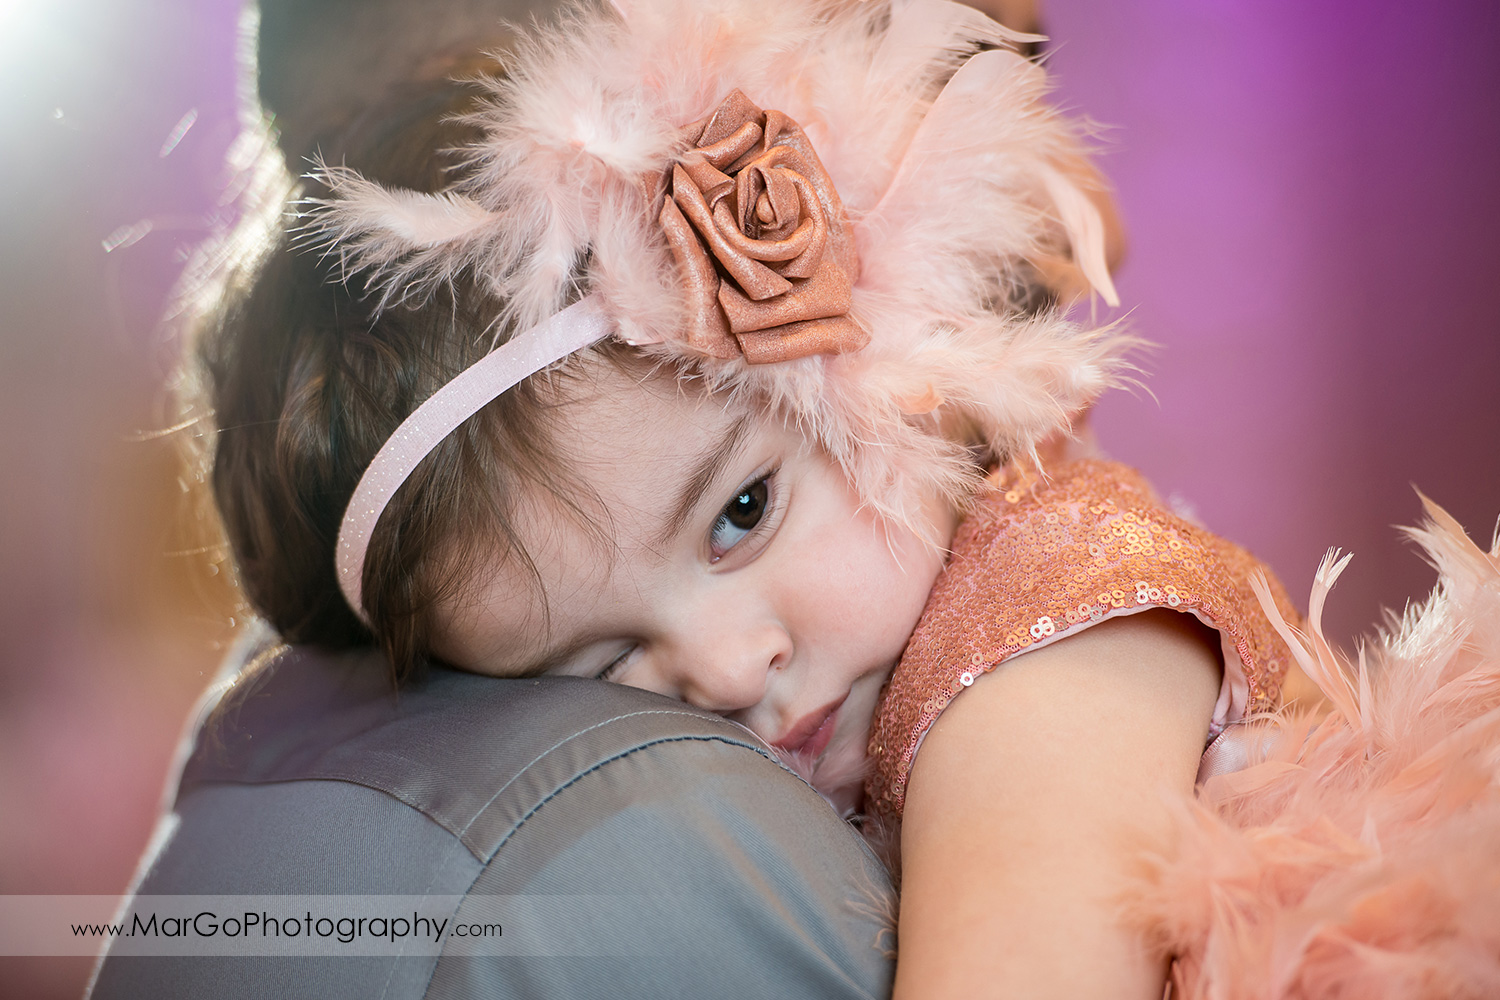 birthday girl with flower and feather hair band resting on dad's arm at Newark Oasis Palace